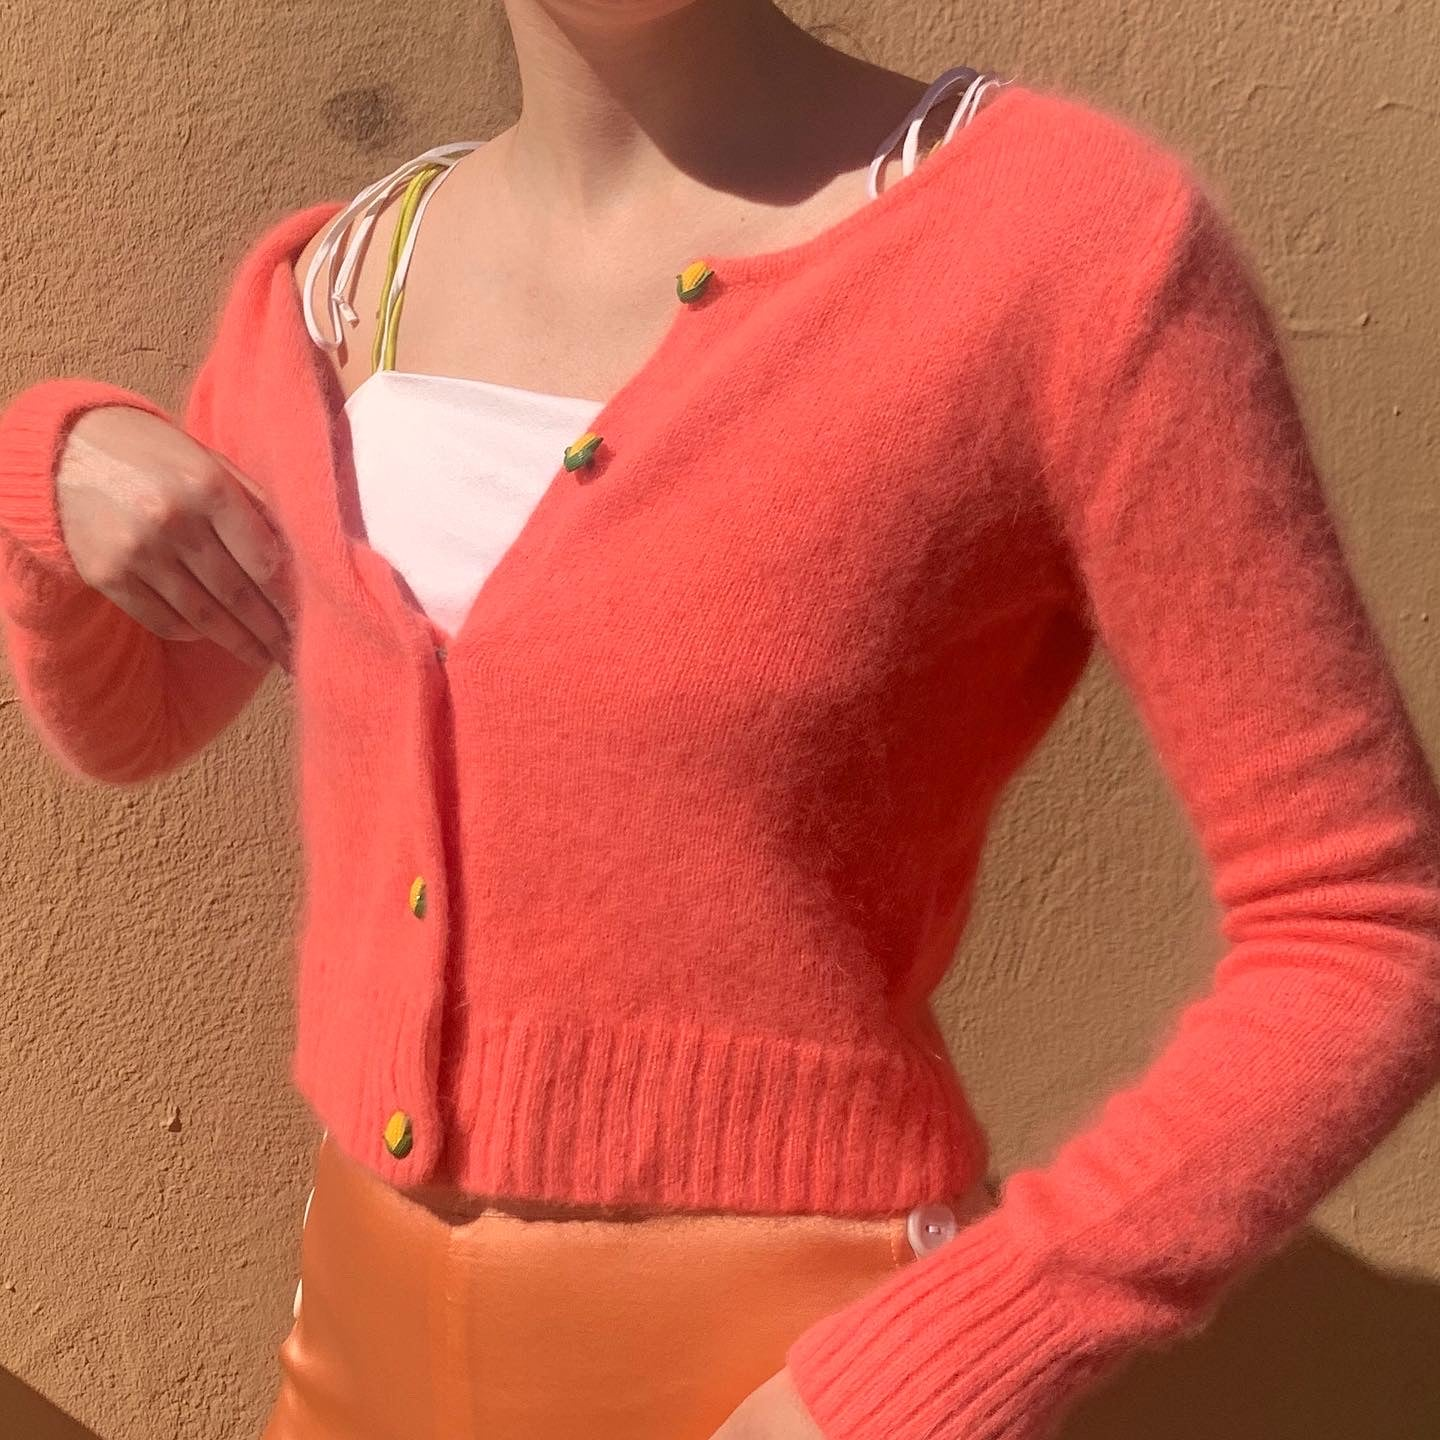 Angora Peach Knit With Vintage Buttons 🌽 - Size Xsmall - Small